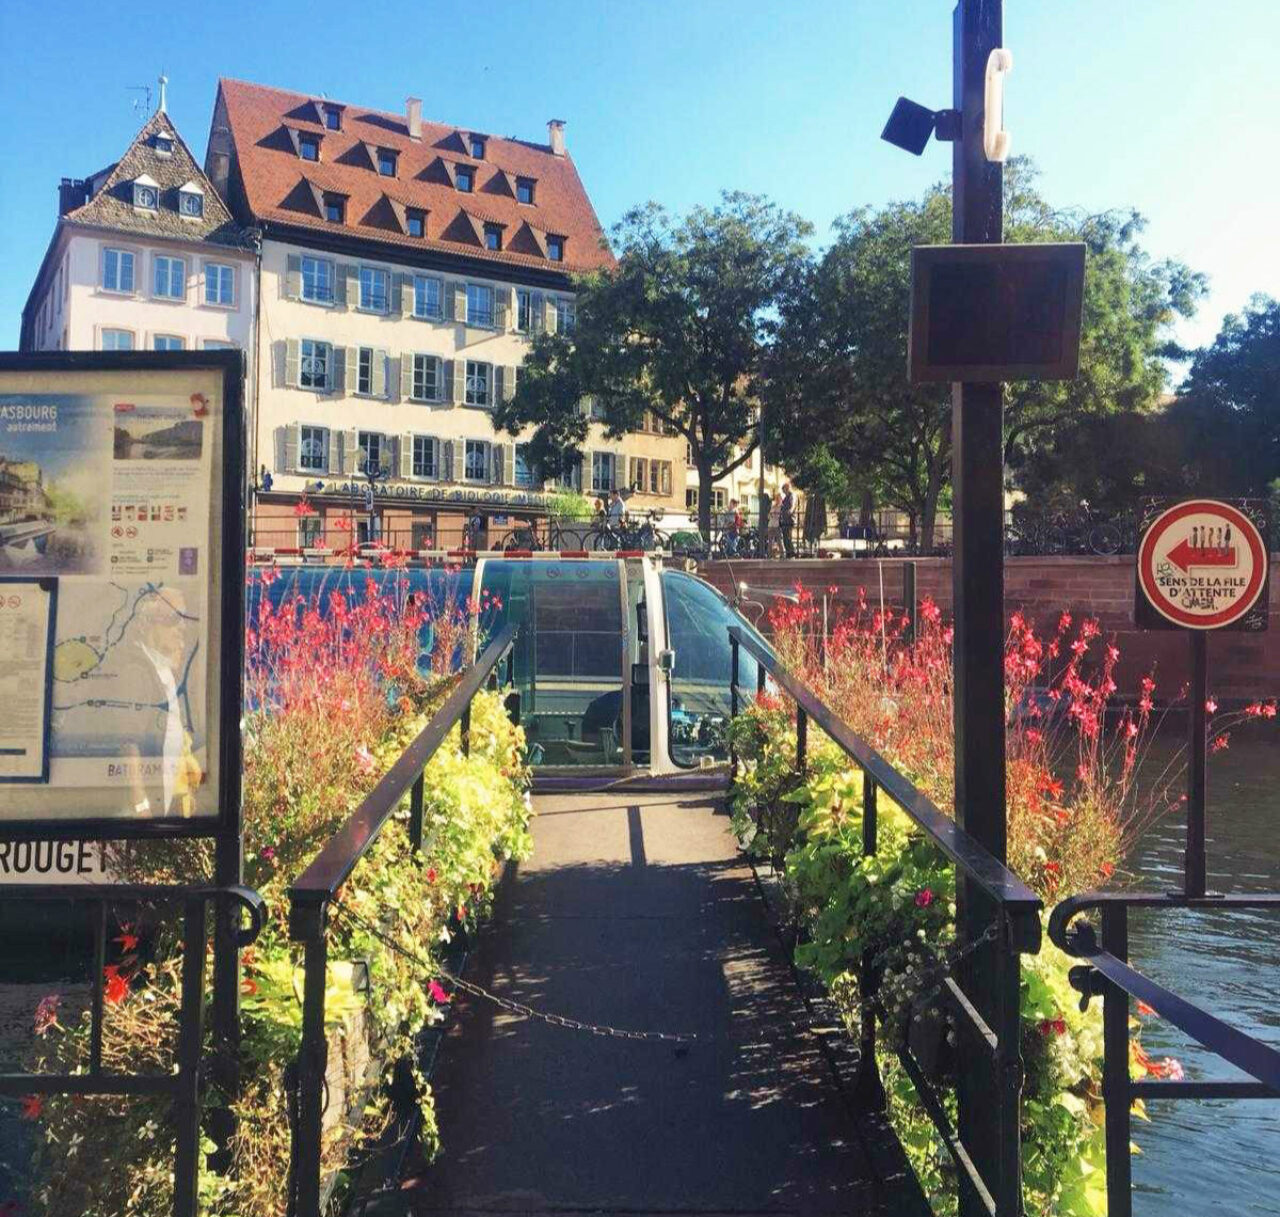 A sunny and vibrant day in Strasbourg, France!